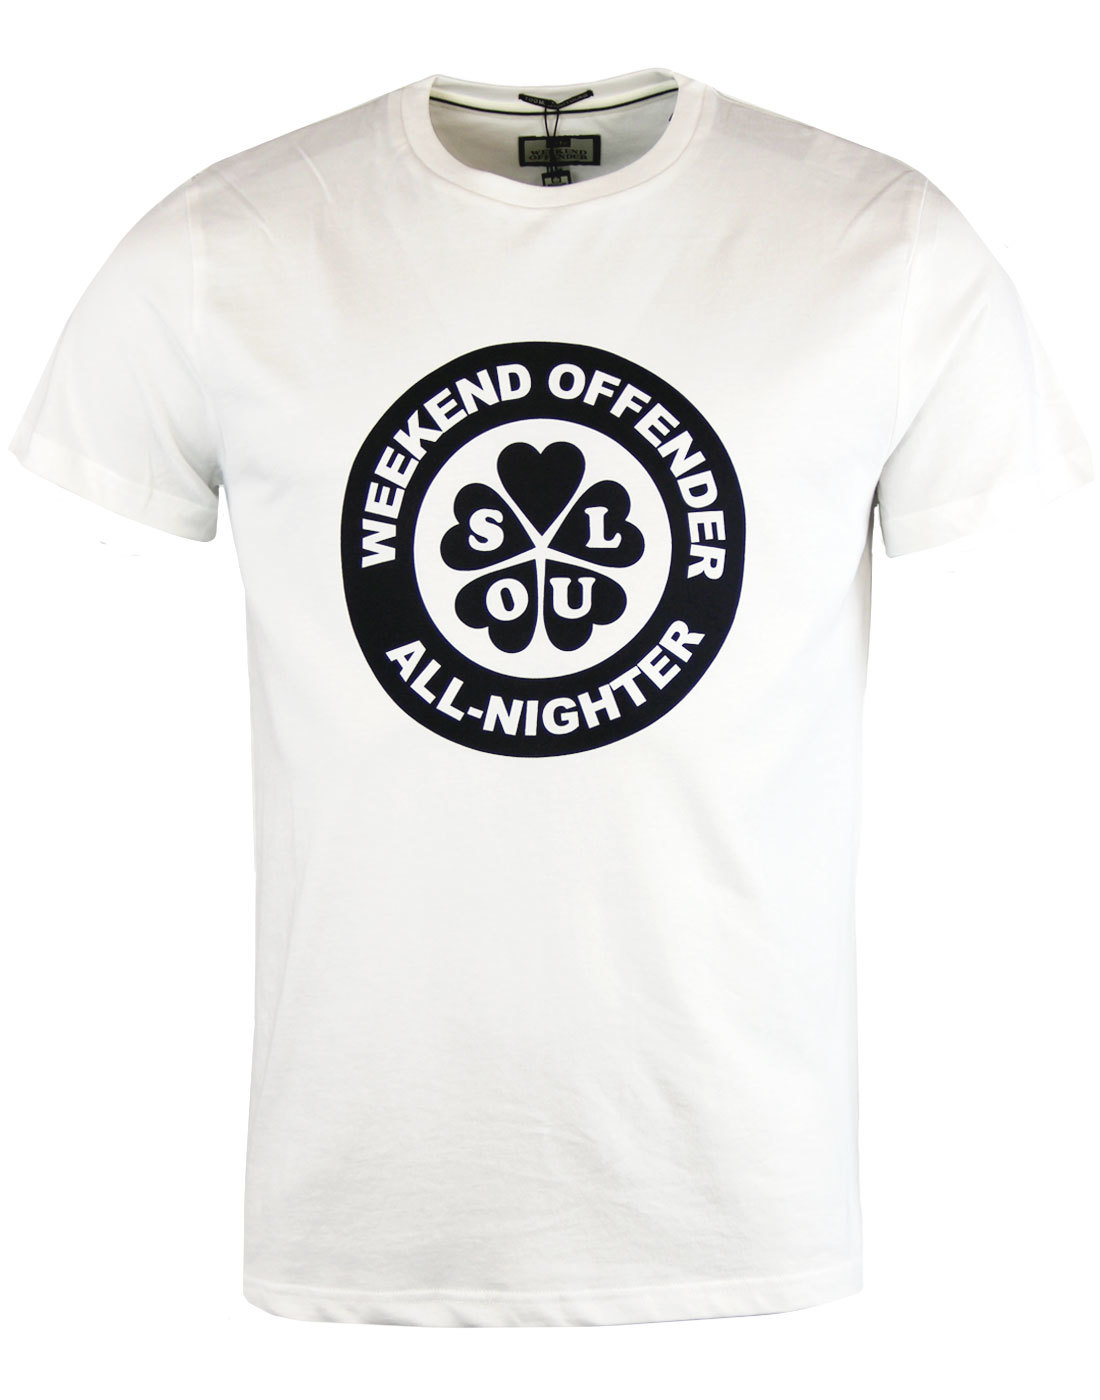 All Nighter WEEKEND OFFENDER Mod T-Shirt